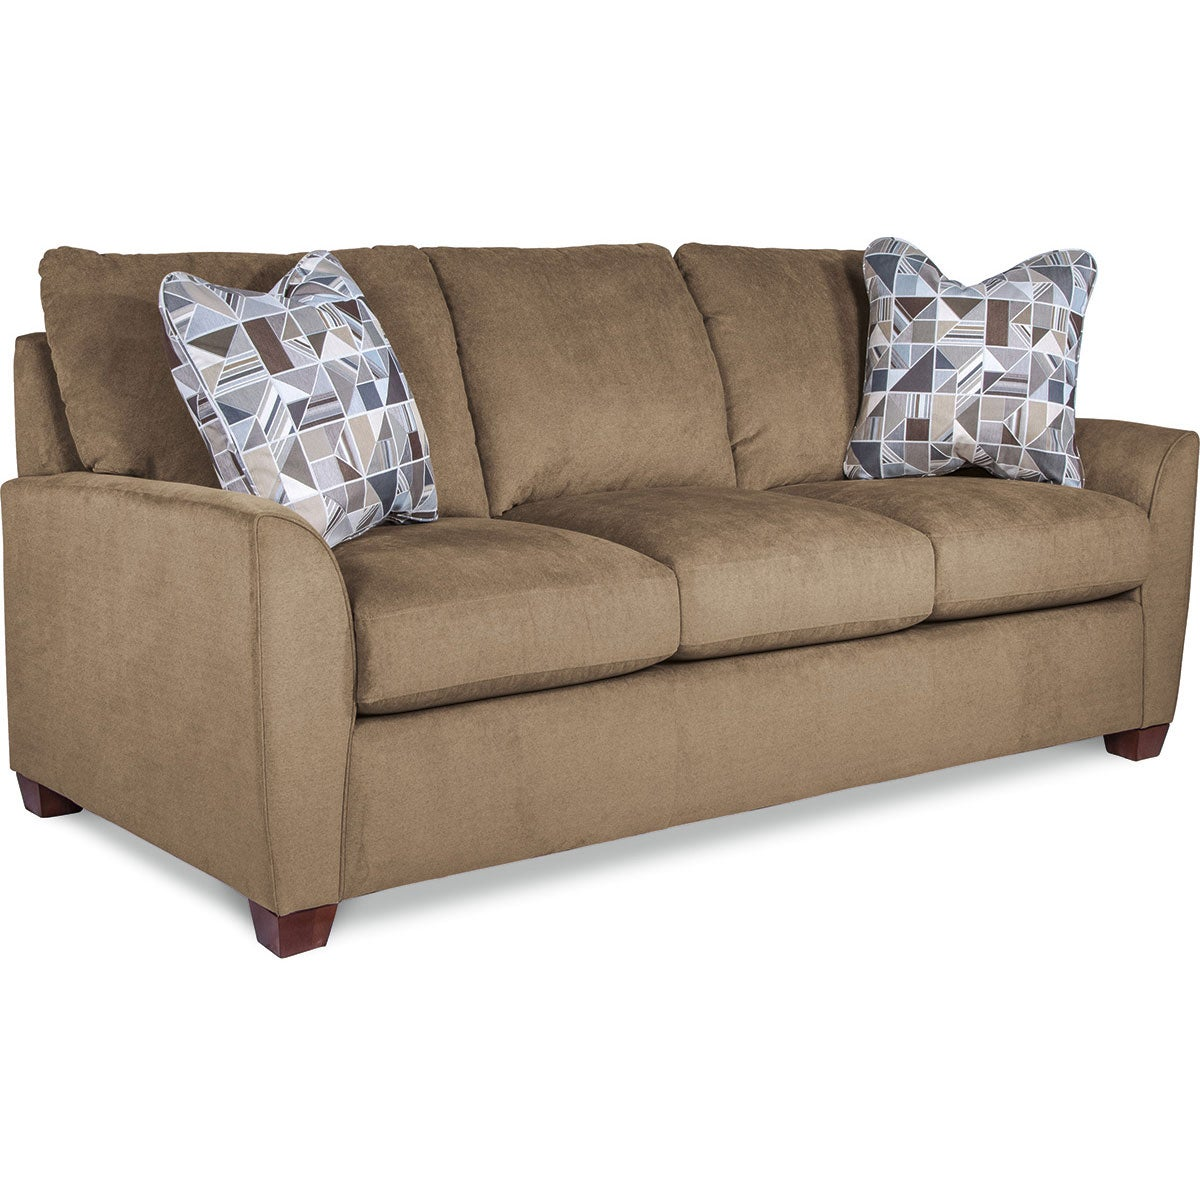 Amy premier sofa Sofa loveseat